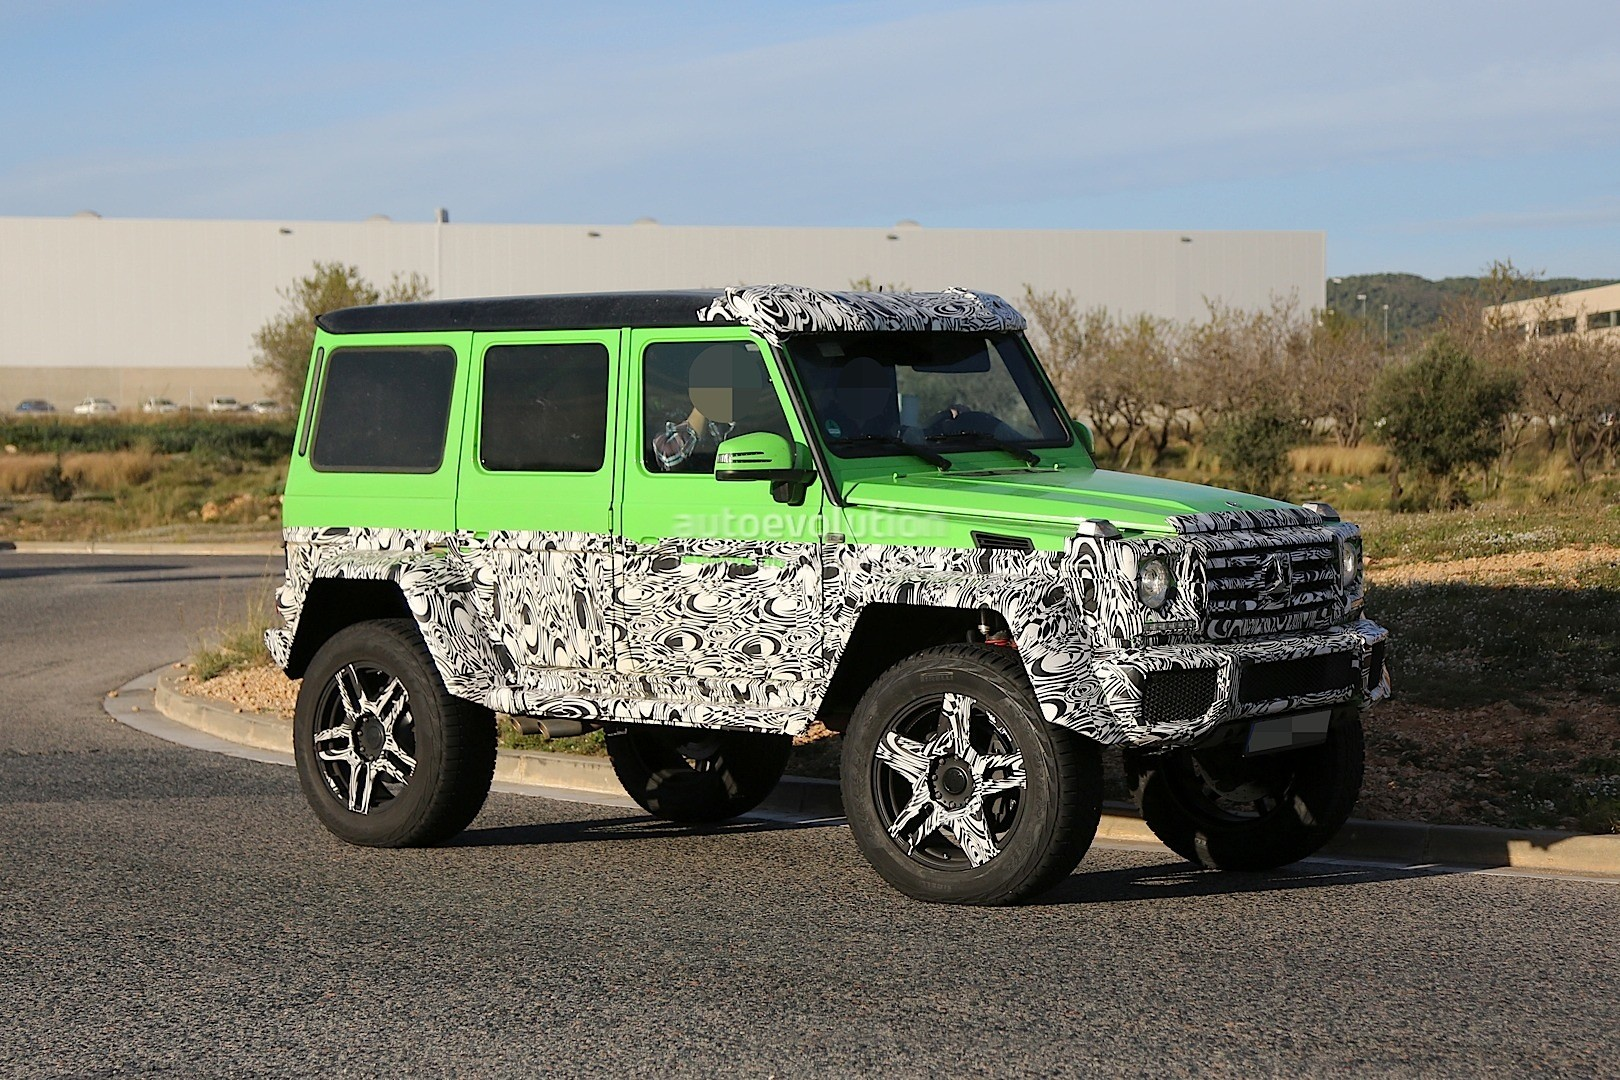 hardcore 4x4 version of mercedes g63 amg 6x6 is now official autoevolution. Black Bedroom Furniture Sets. Home Design Ideas